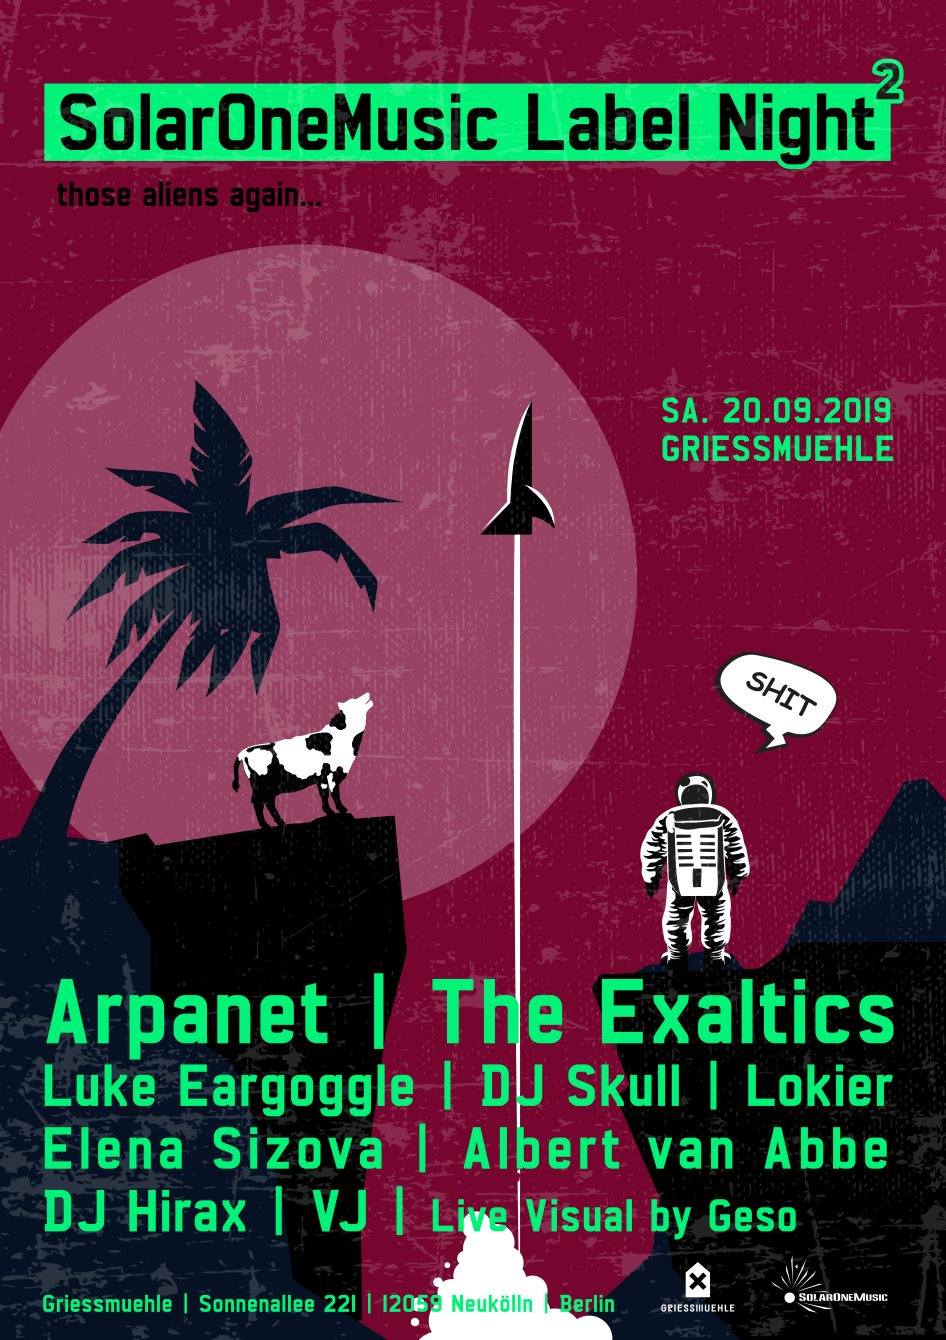 Solar One Music Label Night with Arpanet, The Exaltics, DJ Skull, Lokier & More - Flyer front